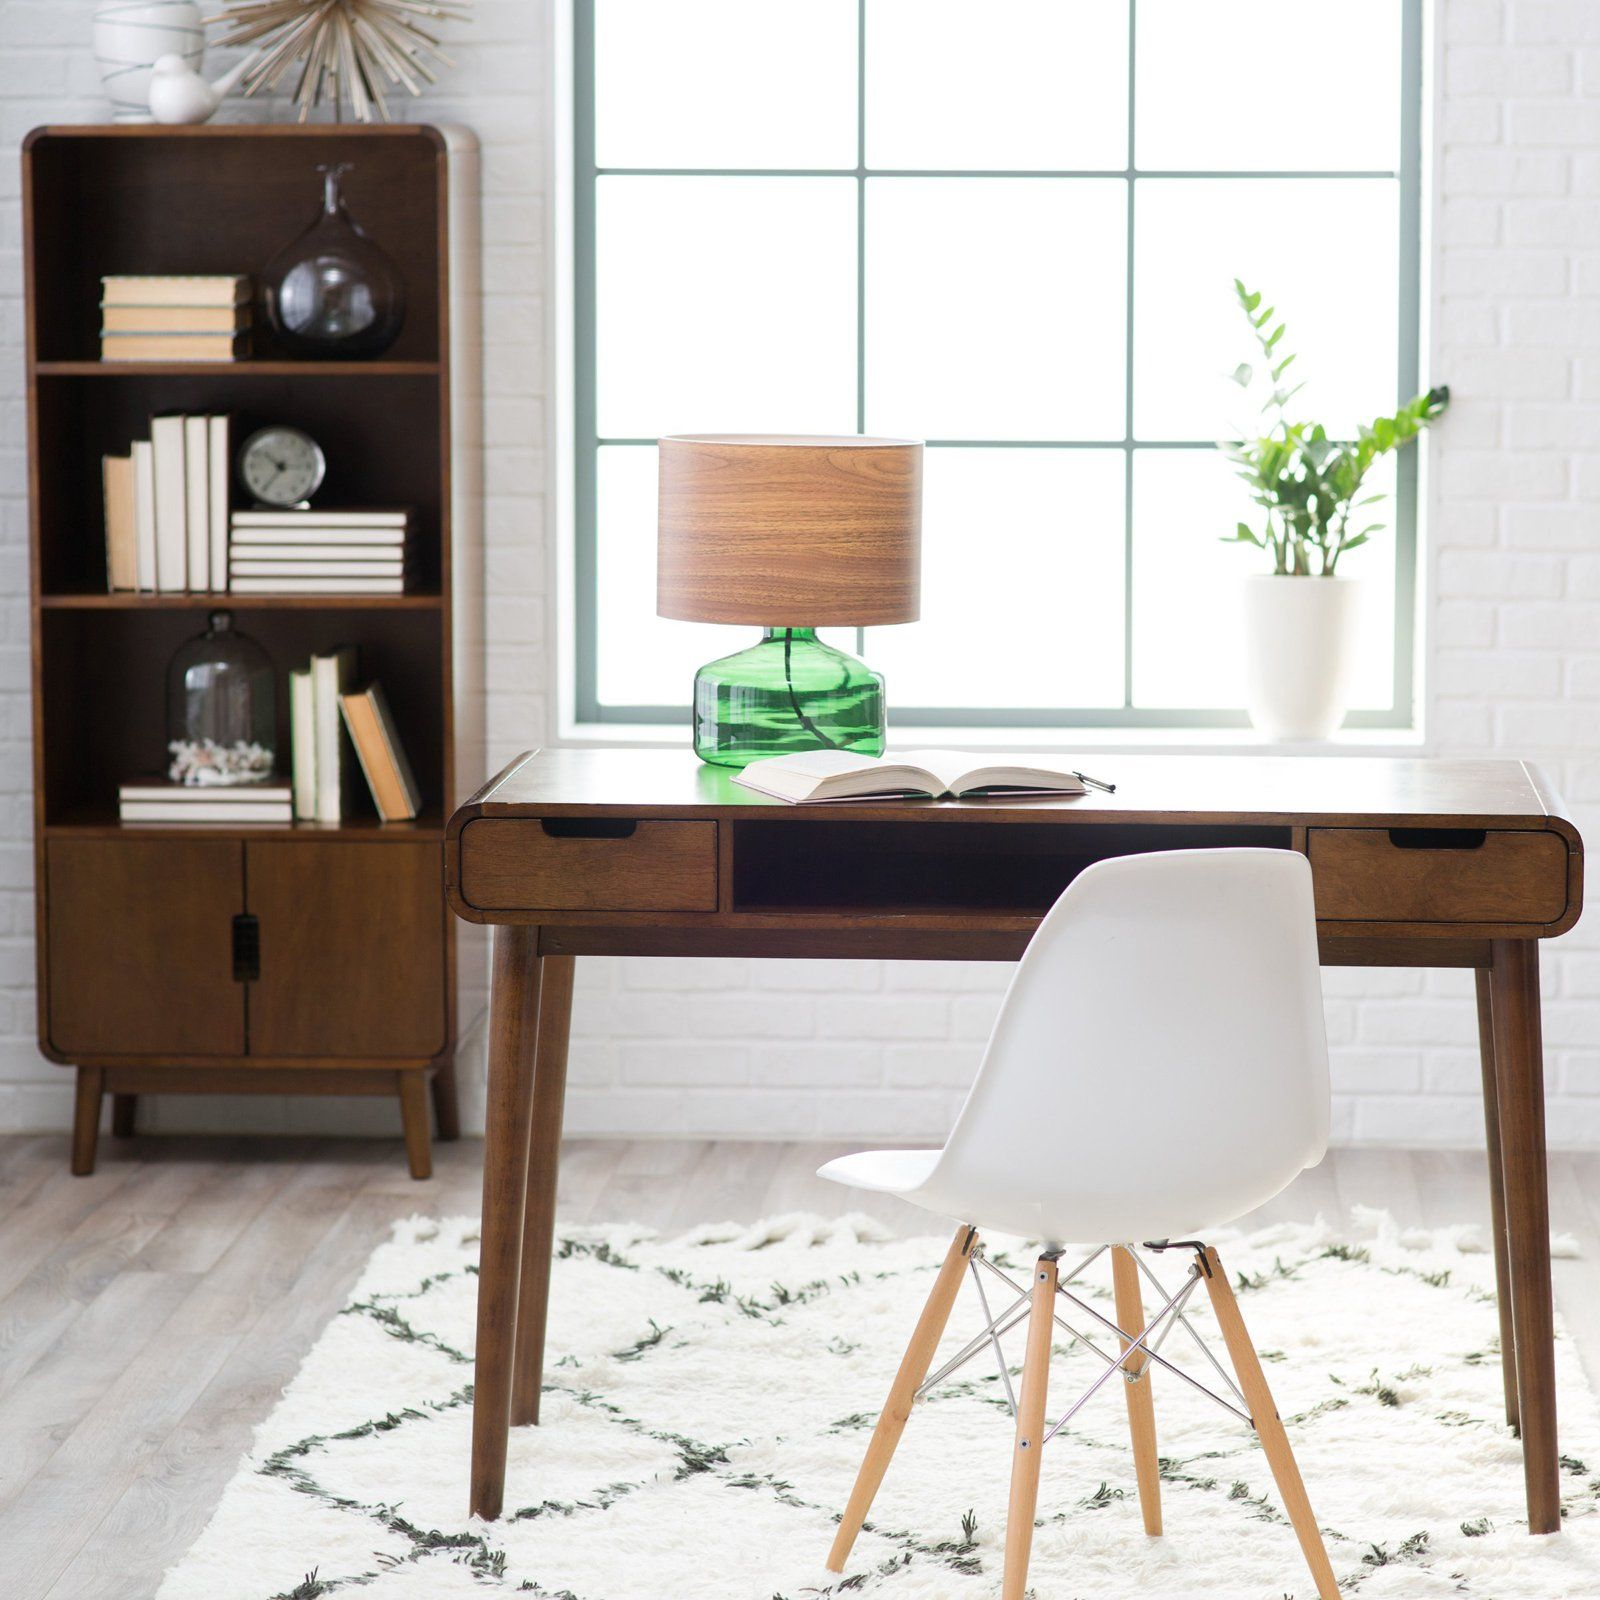 stylist design better homes and gardens desk. Belham Living Carter Mid Century Modern Writing Desk  Create your Mad Men style home office with the http www hayneedle com product belham living carter mid century